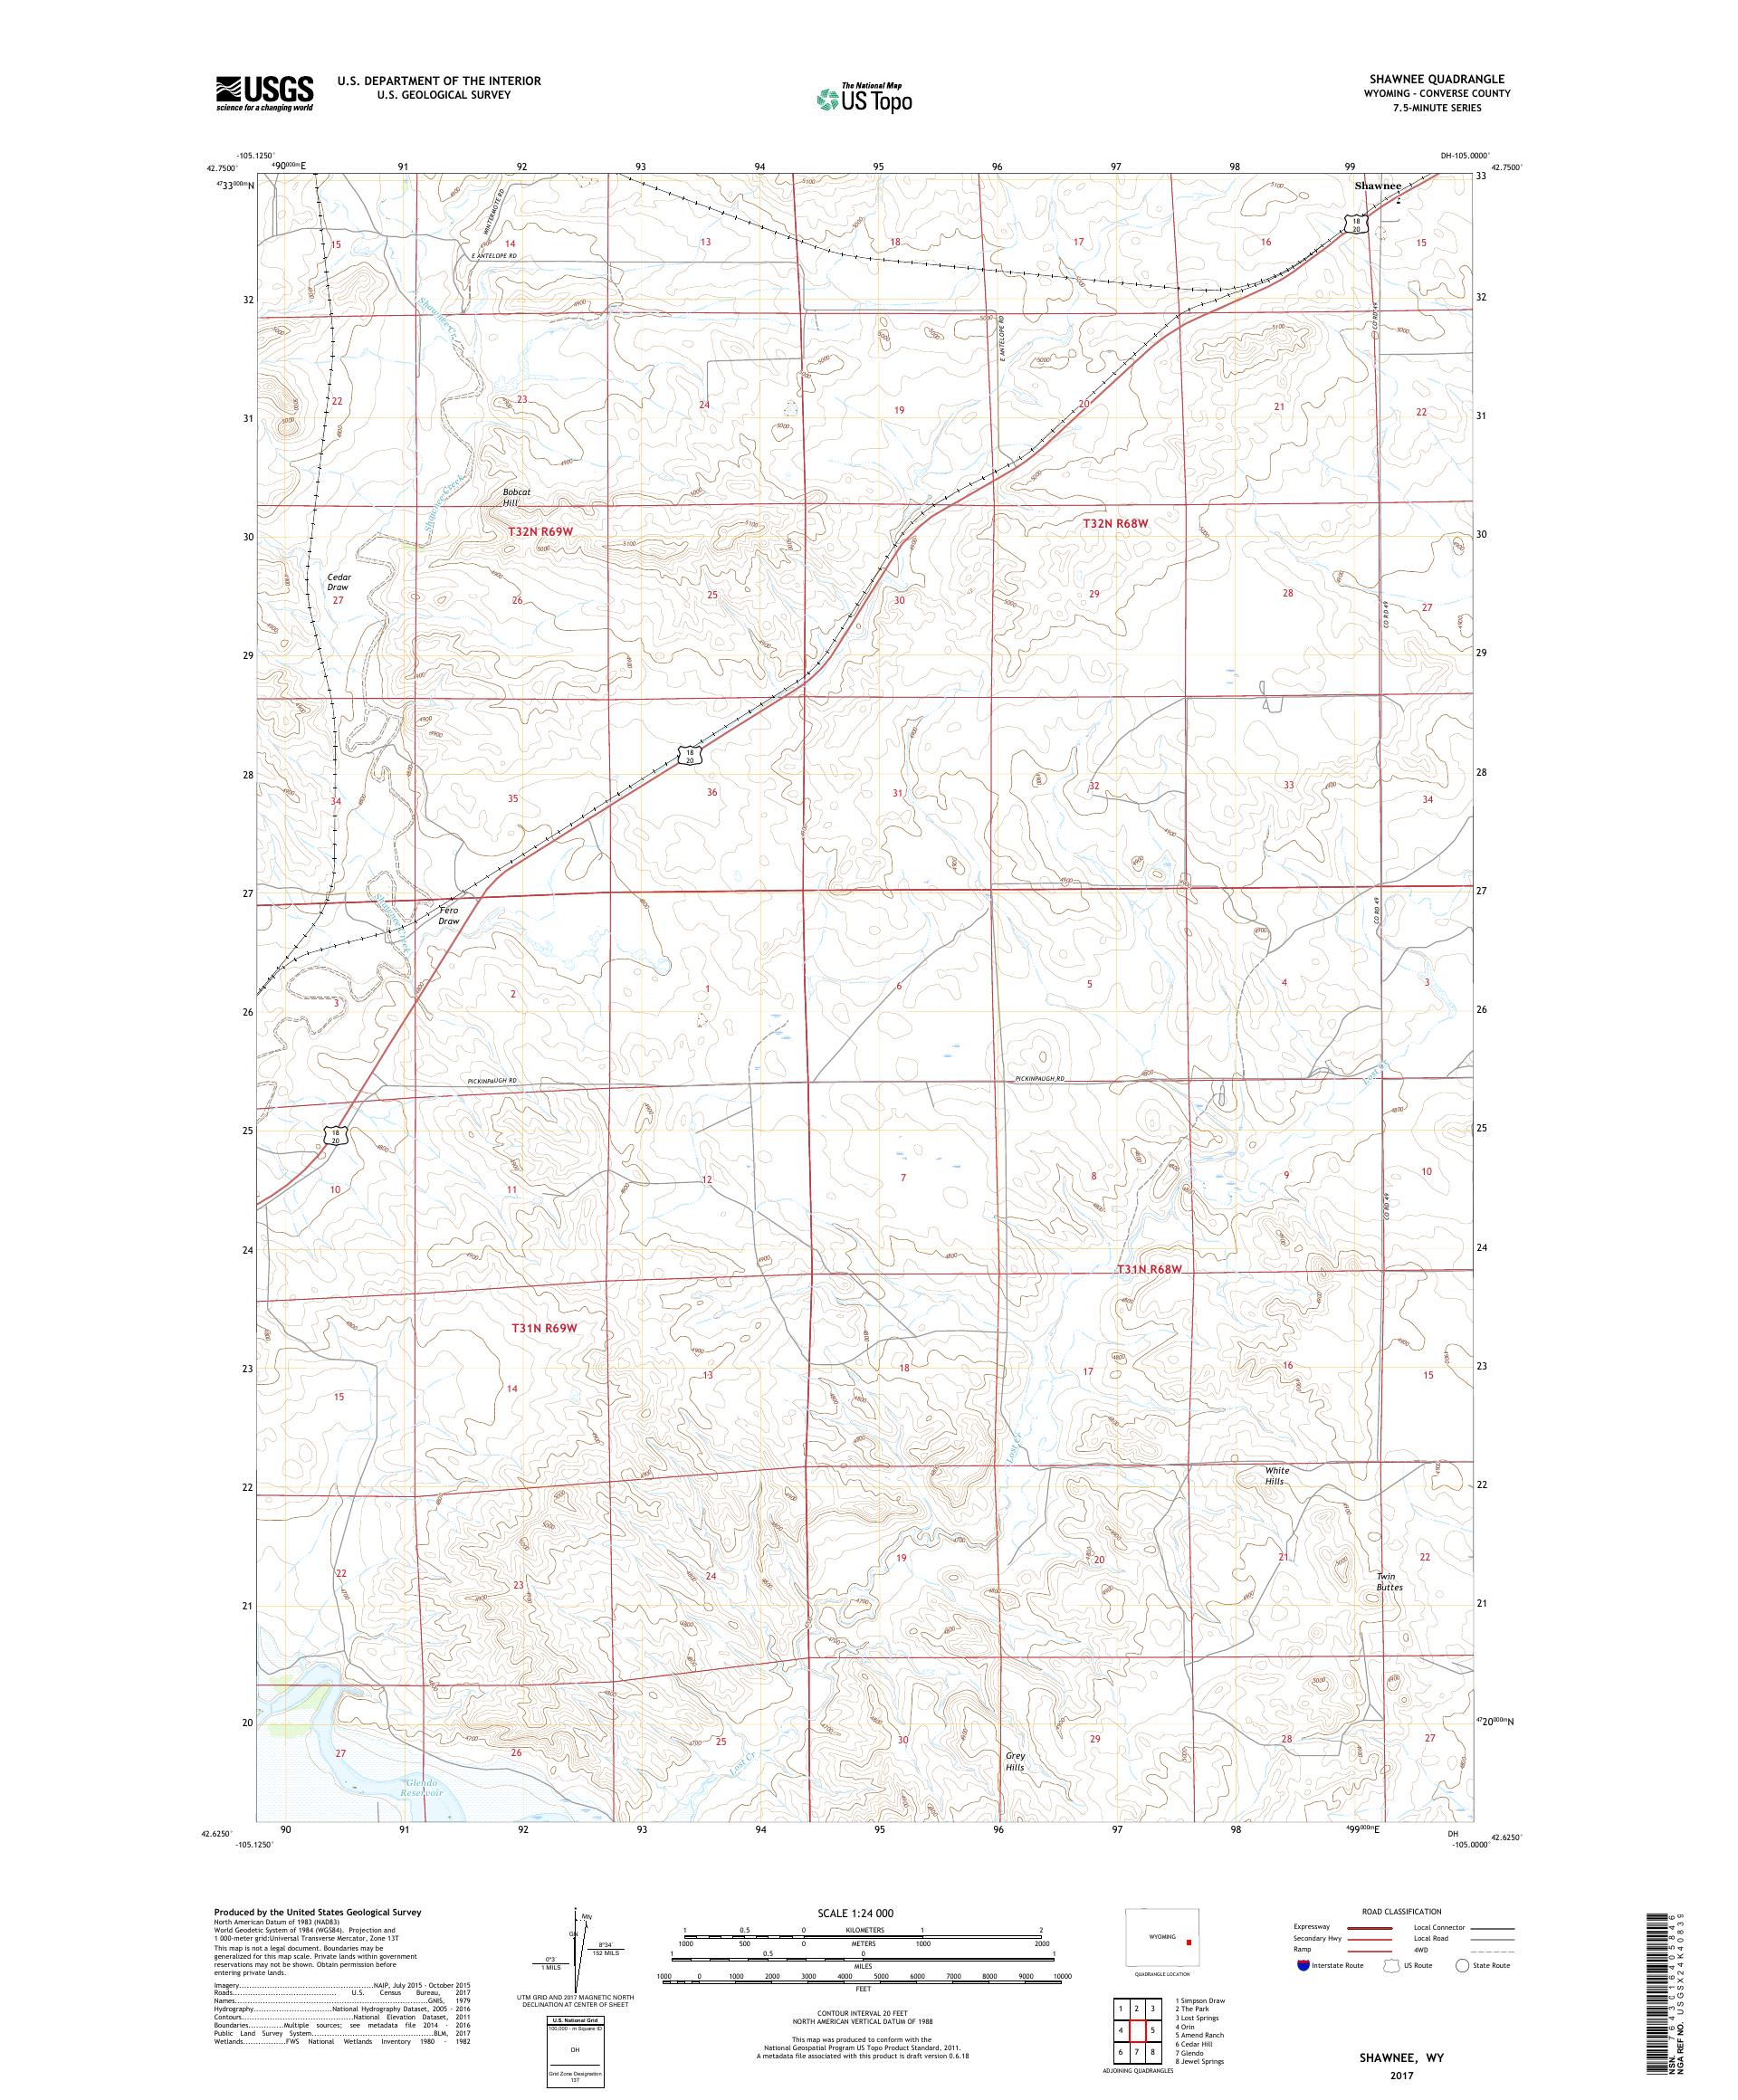 MyTopo Shawnee, Wyoming USGS Quad Topo Map on shinnecock indian nation map, santa fe map, lochbuie map, northwest oklahoma city map, inola map, raytown map, alabama-coushatta tribe of texas map, ohio national map, bennettsville map, northwest indian war map, alcova map, town of wheatfield map, cedartown map, boston map, charleston map, winnebago tribe of nebraska map, idabel ok map, eastern band of cherokee indians map, medicine lodge map, coushatta tribe of louisiana map,